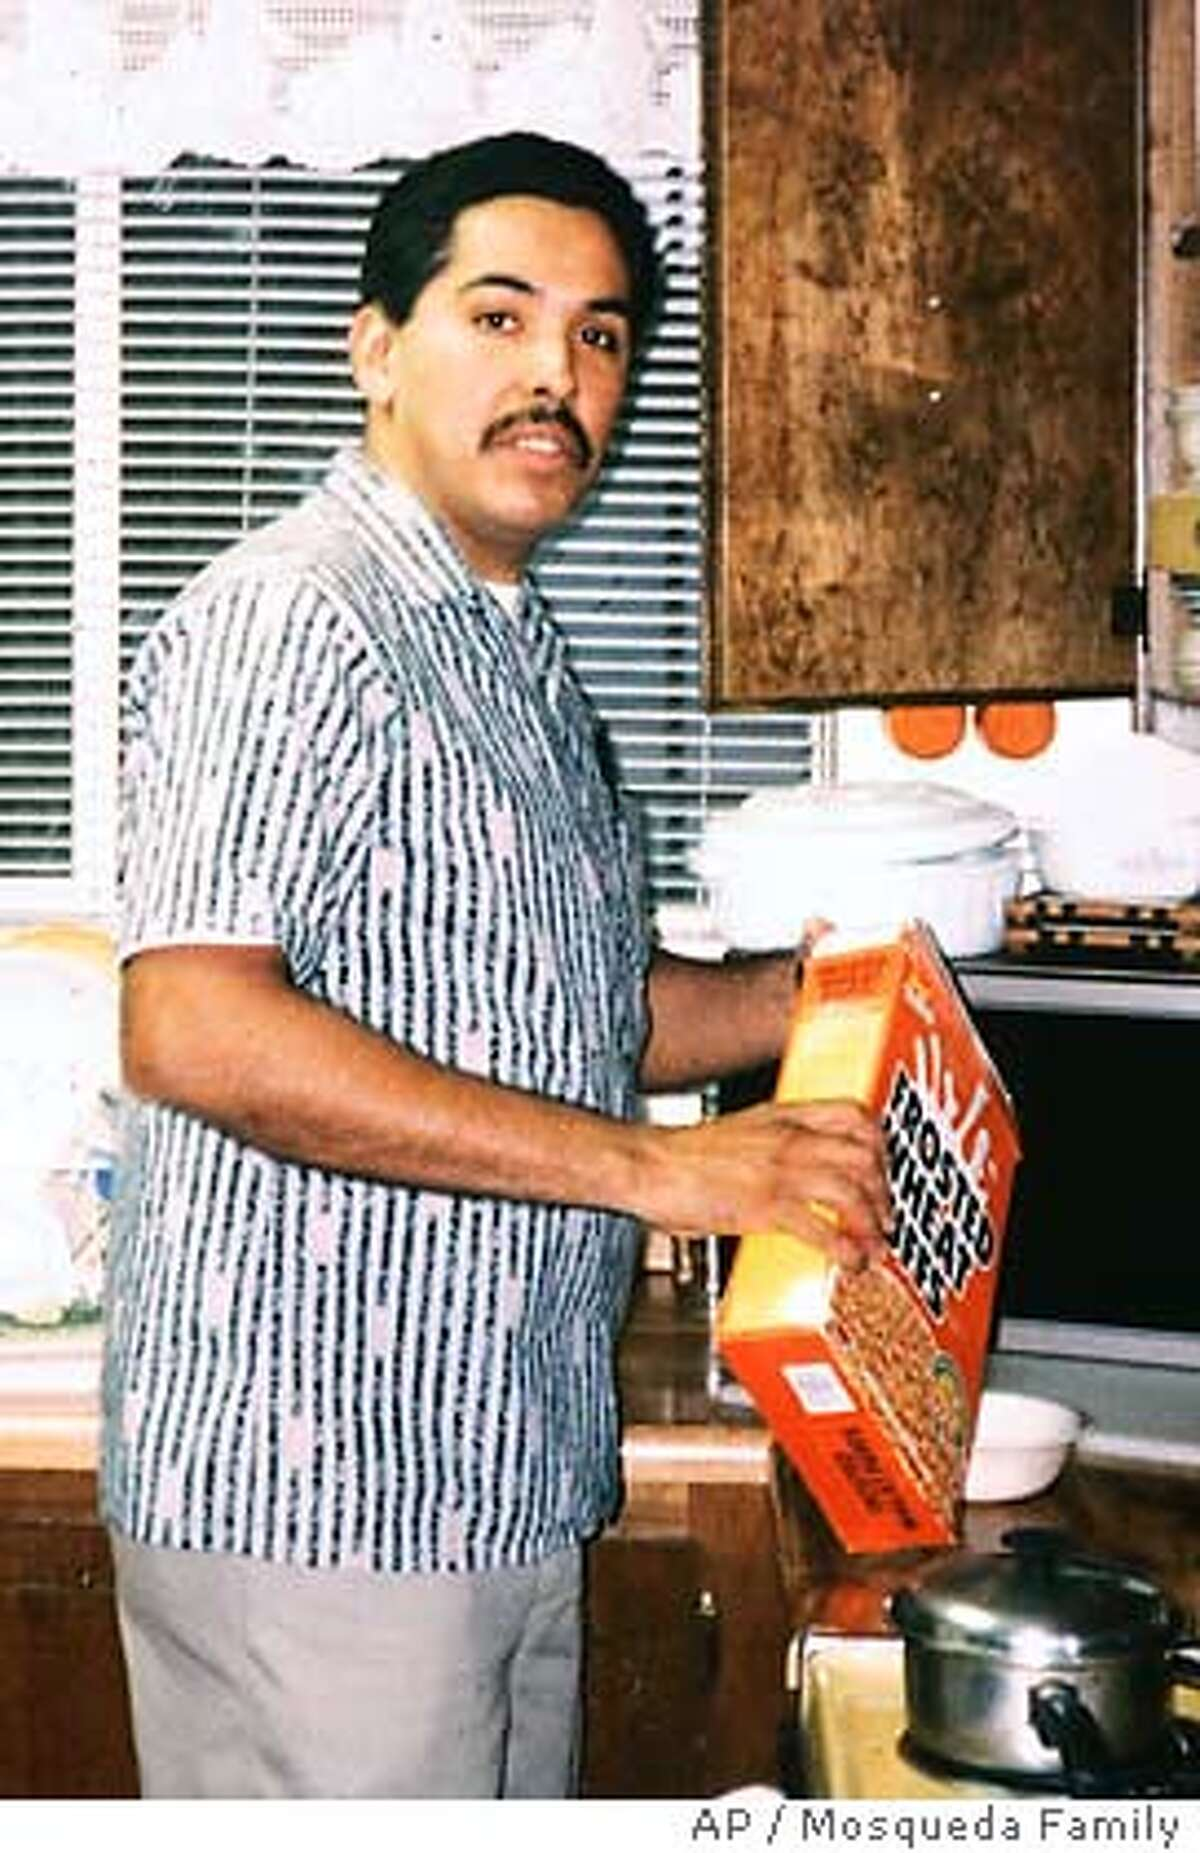 This 2001 photo provided by the family shows James Mosqueda, the driver of the gasoline truck that crashed, burned and caused the collapse of an Oakland Freeway Sunday, April 29, 2007. Mosqueda, 51, was driving southbound on the MacArthur Maze Sunday when the truck overturned, caught fire causing the steel supports to weaken and the freeway to collapse. Mosqueda was taken by taxi to a local hospital where he is being treated for second degree burns. (AP Photo/ Mosqueda Family) ** NO SALES **